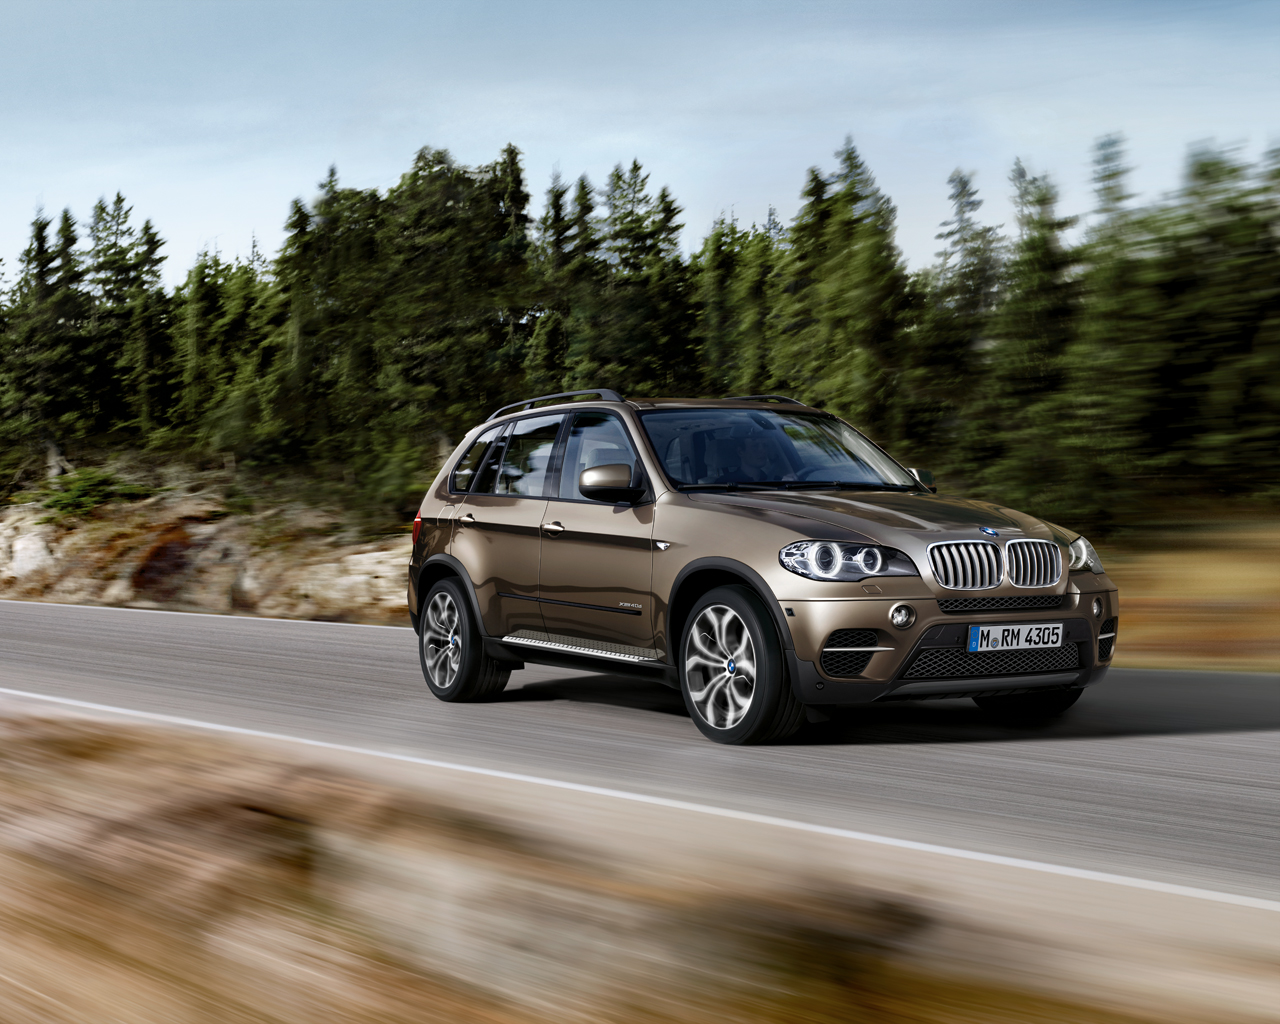 The new BMW X5 4